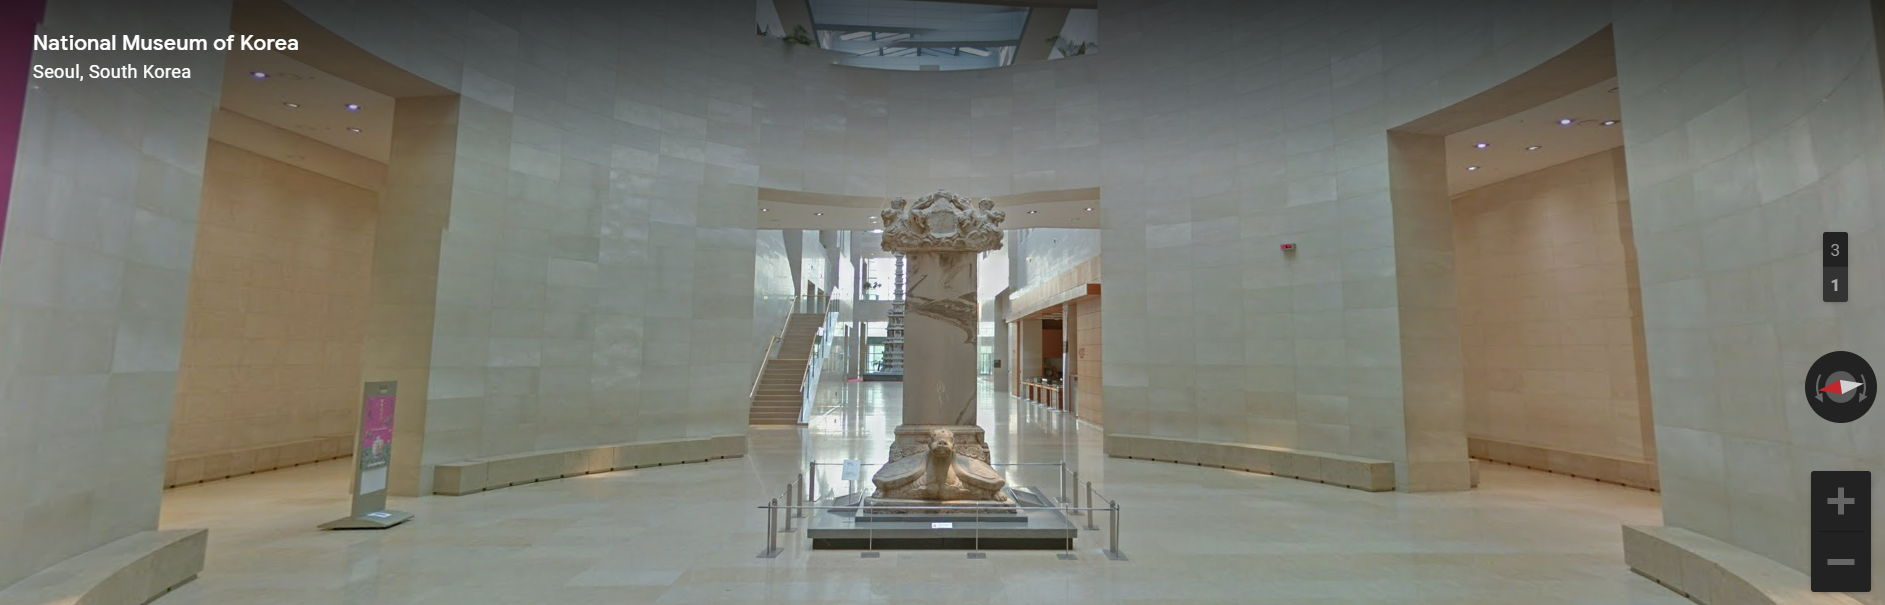 Entrance to National Museum of Korea